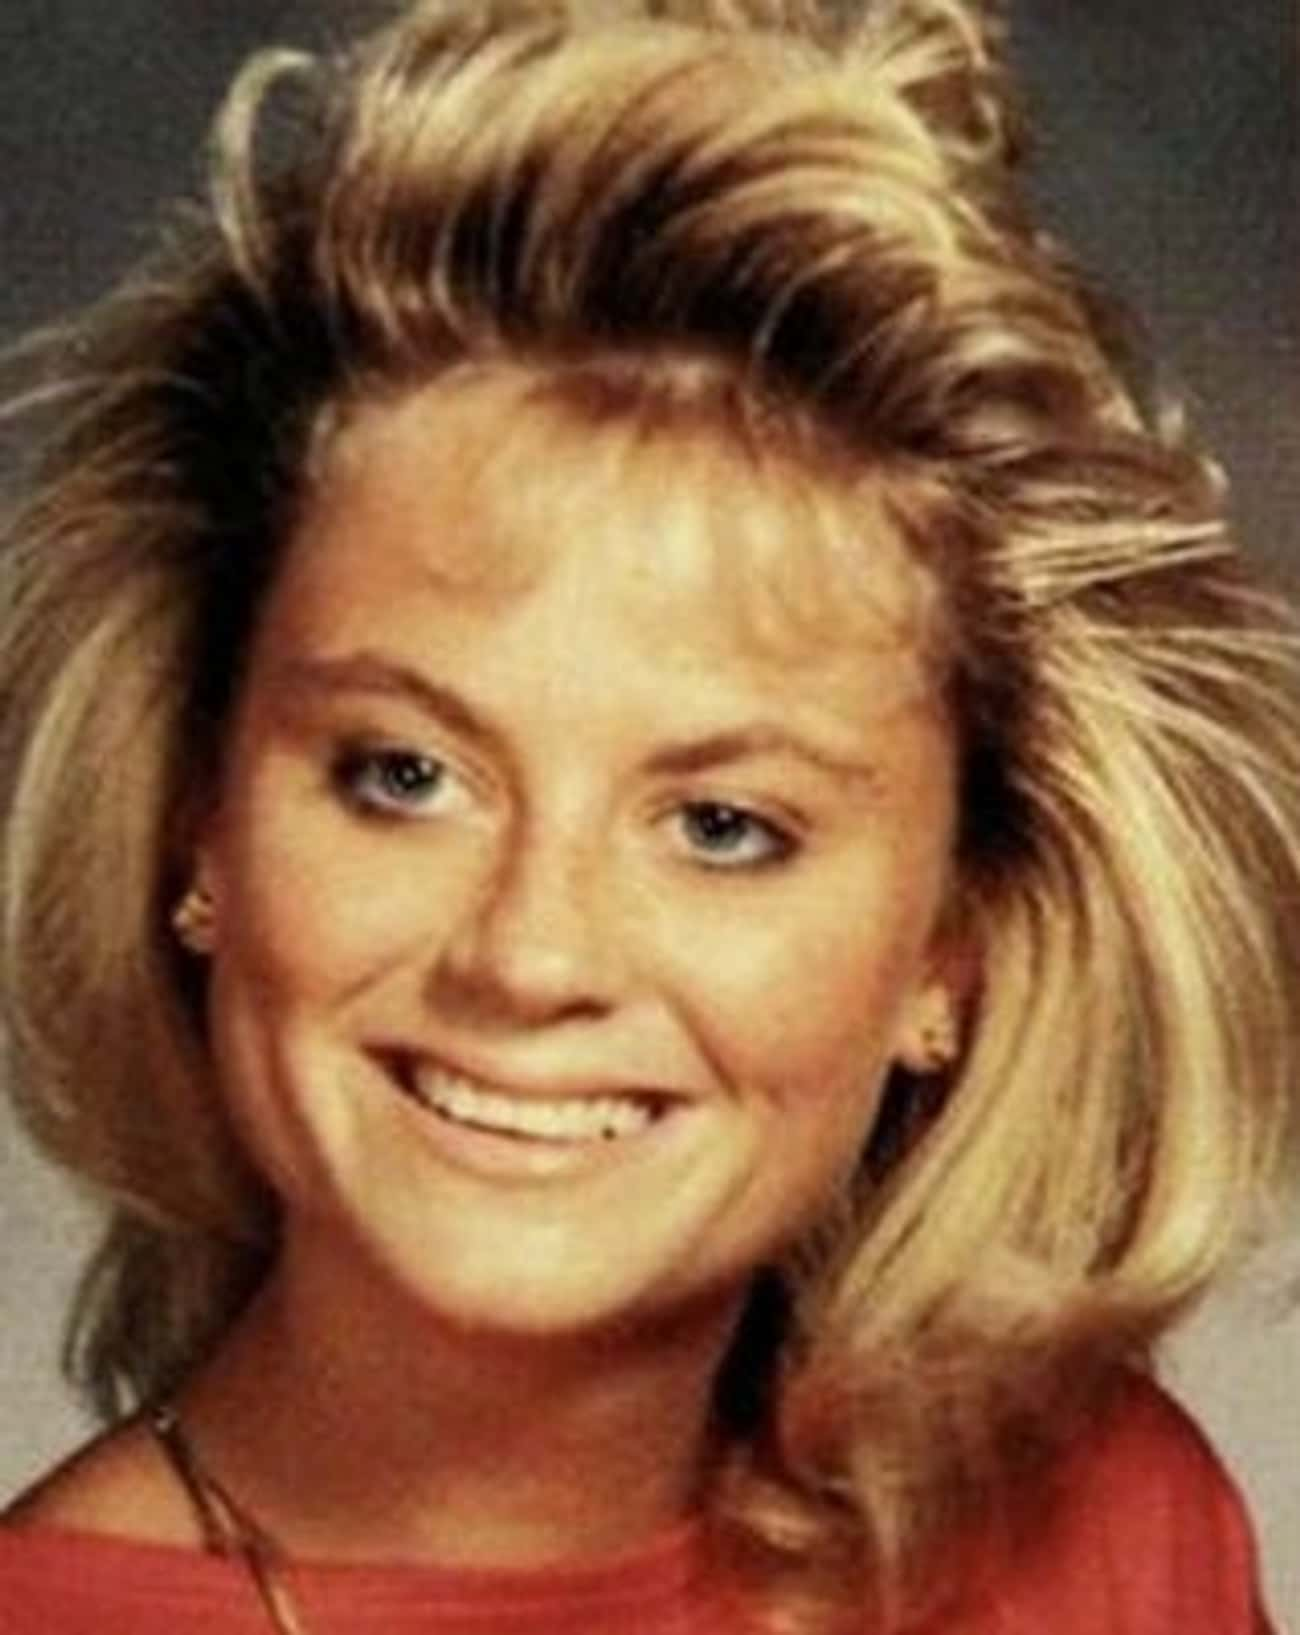 Young Amy Poehler in Orange Sh is listed (or ranked) 2 on the list 11 Pictures of Young Amy Poehler